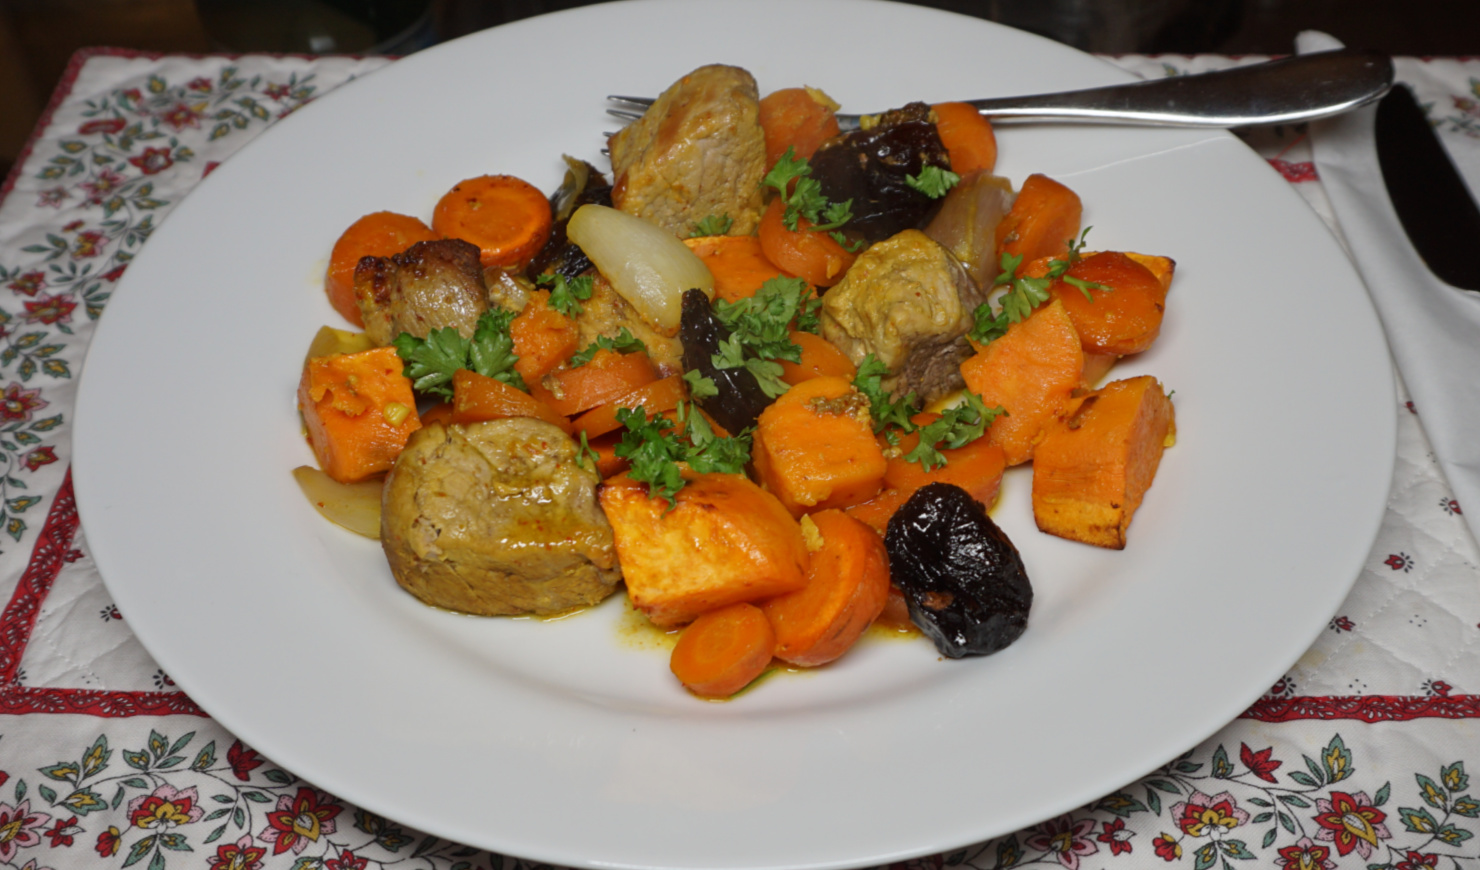 Pork with sweet potatoes and prunes